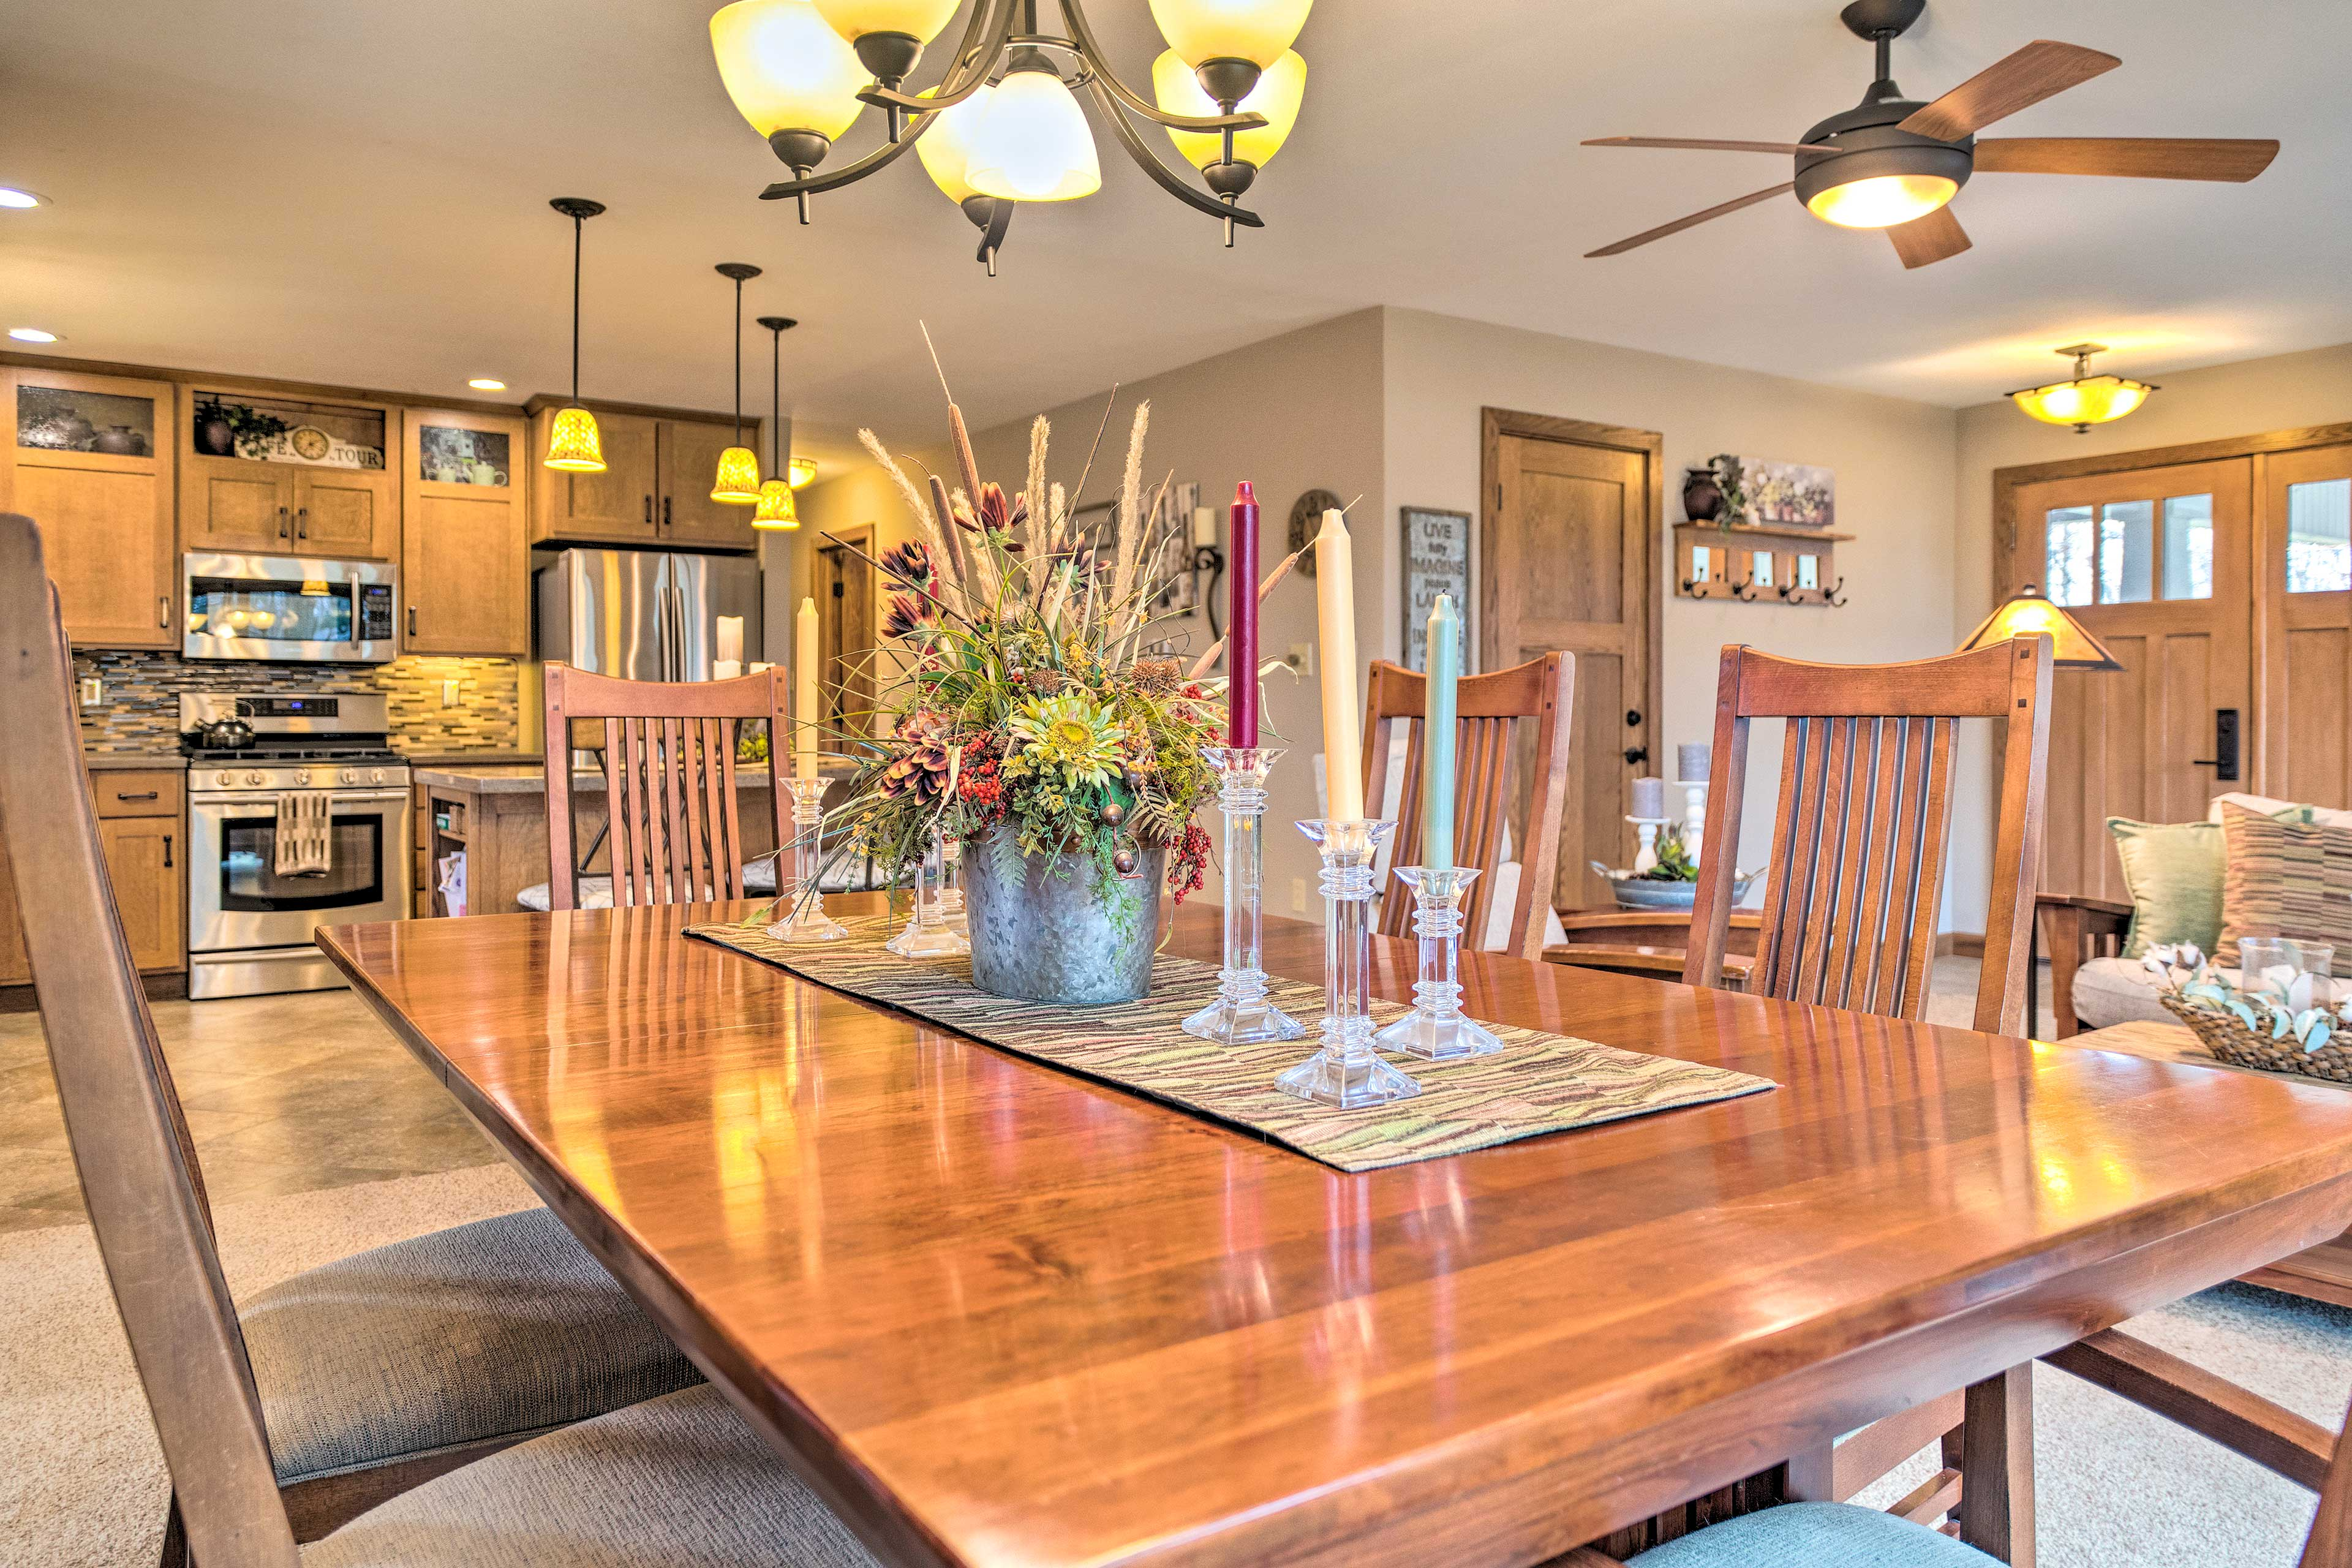 Set the wooden dining table for dinner.